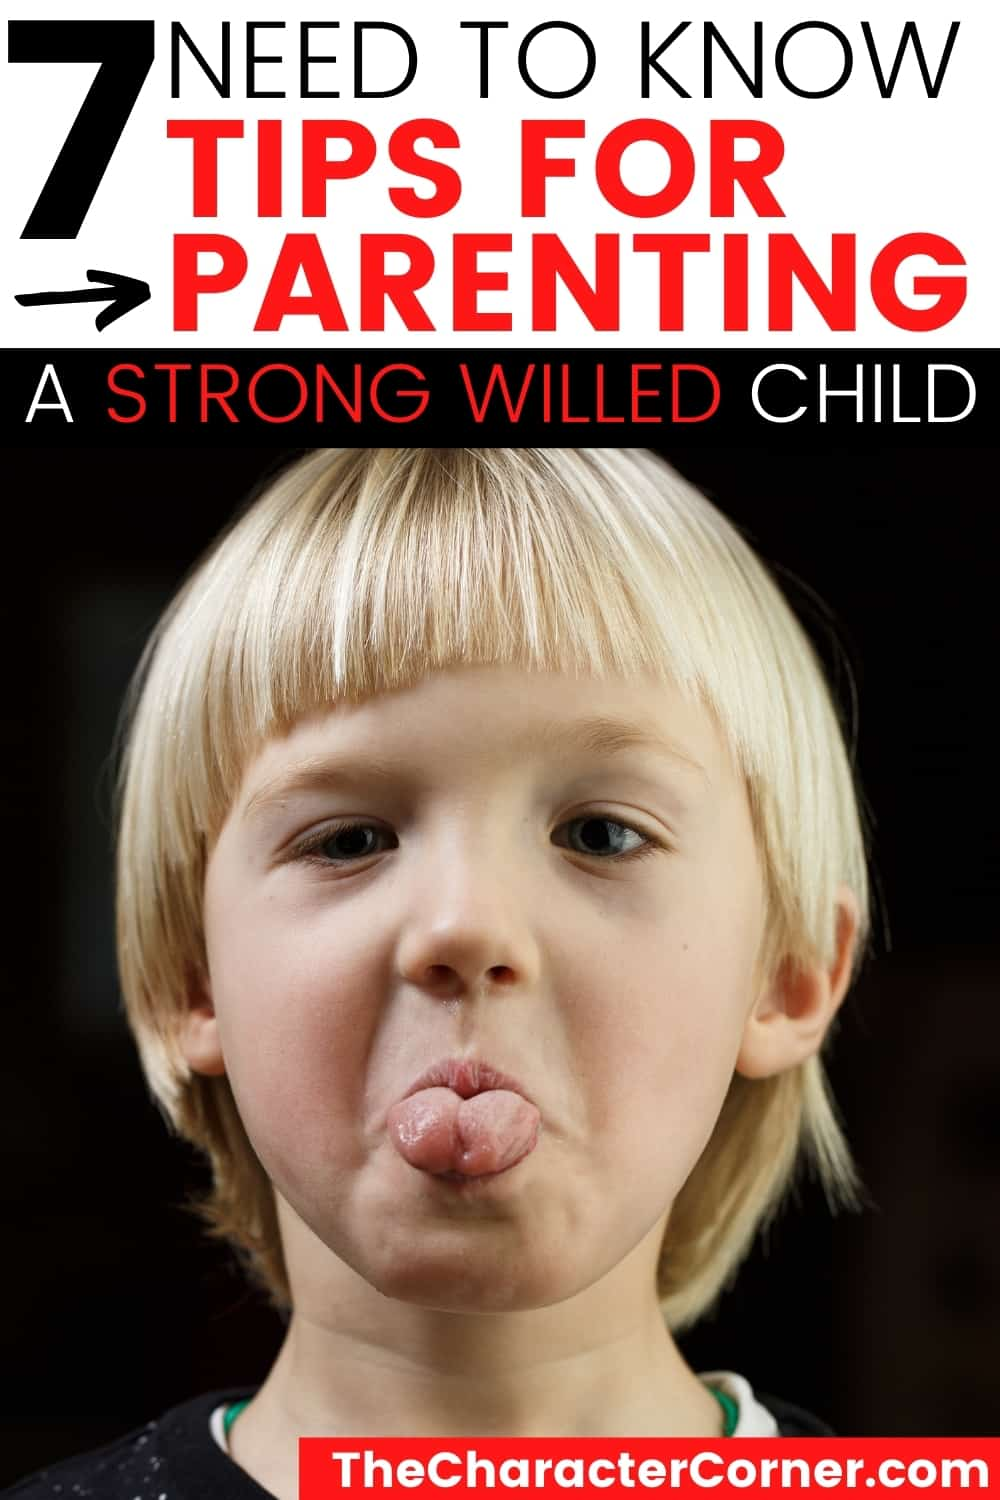 a young boy Strong-Willed Child